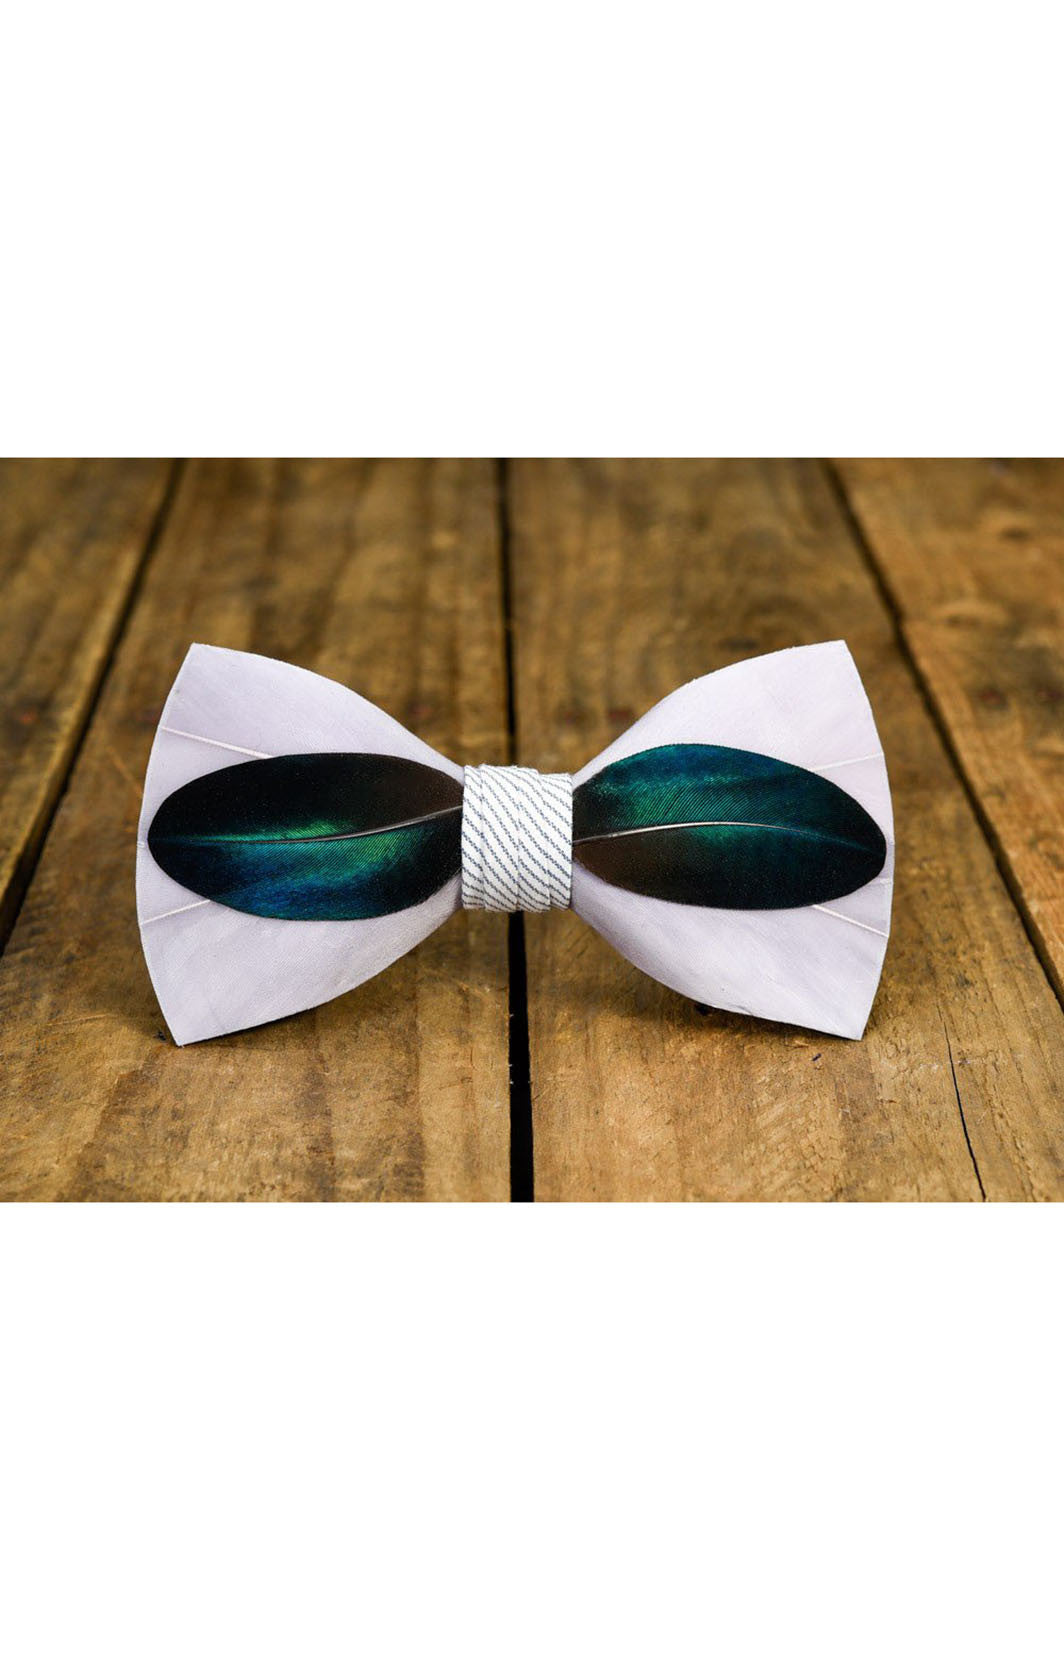 brackish bow ties, feather bow ties, new bow ties, hand made bow tie, mens fun bow tie, goose feathers, peacock feathers